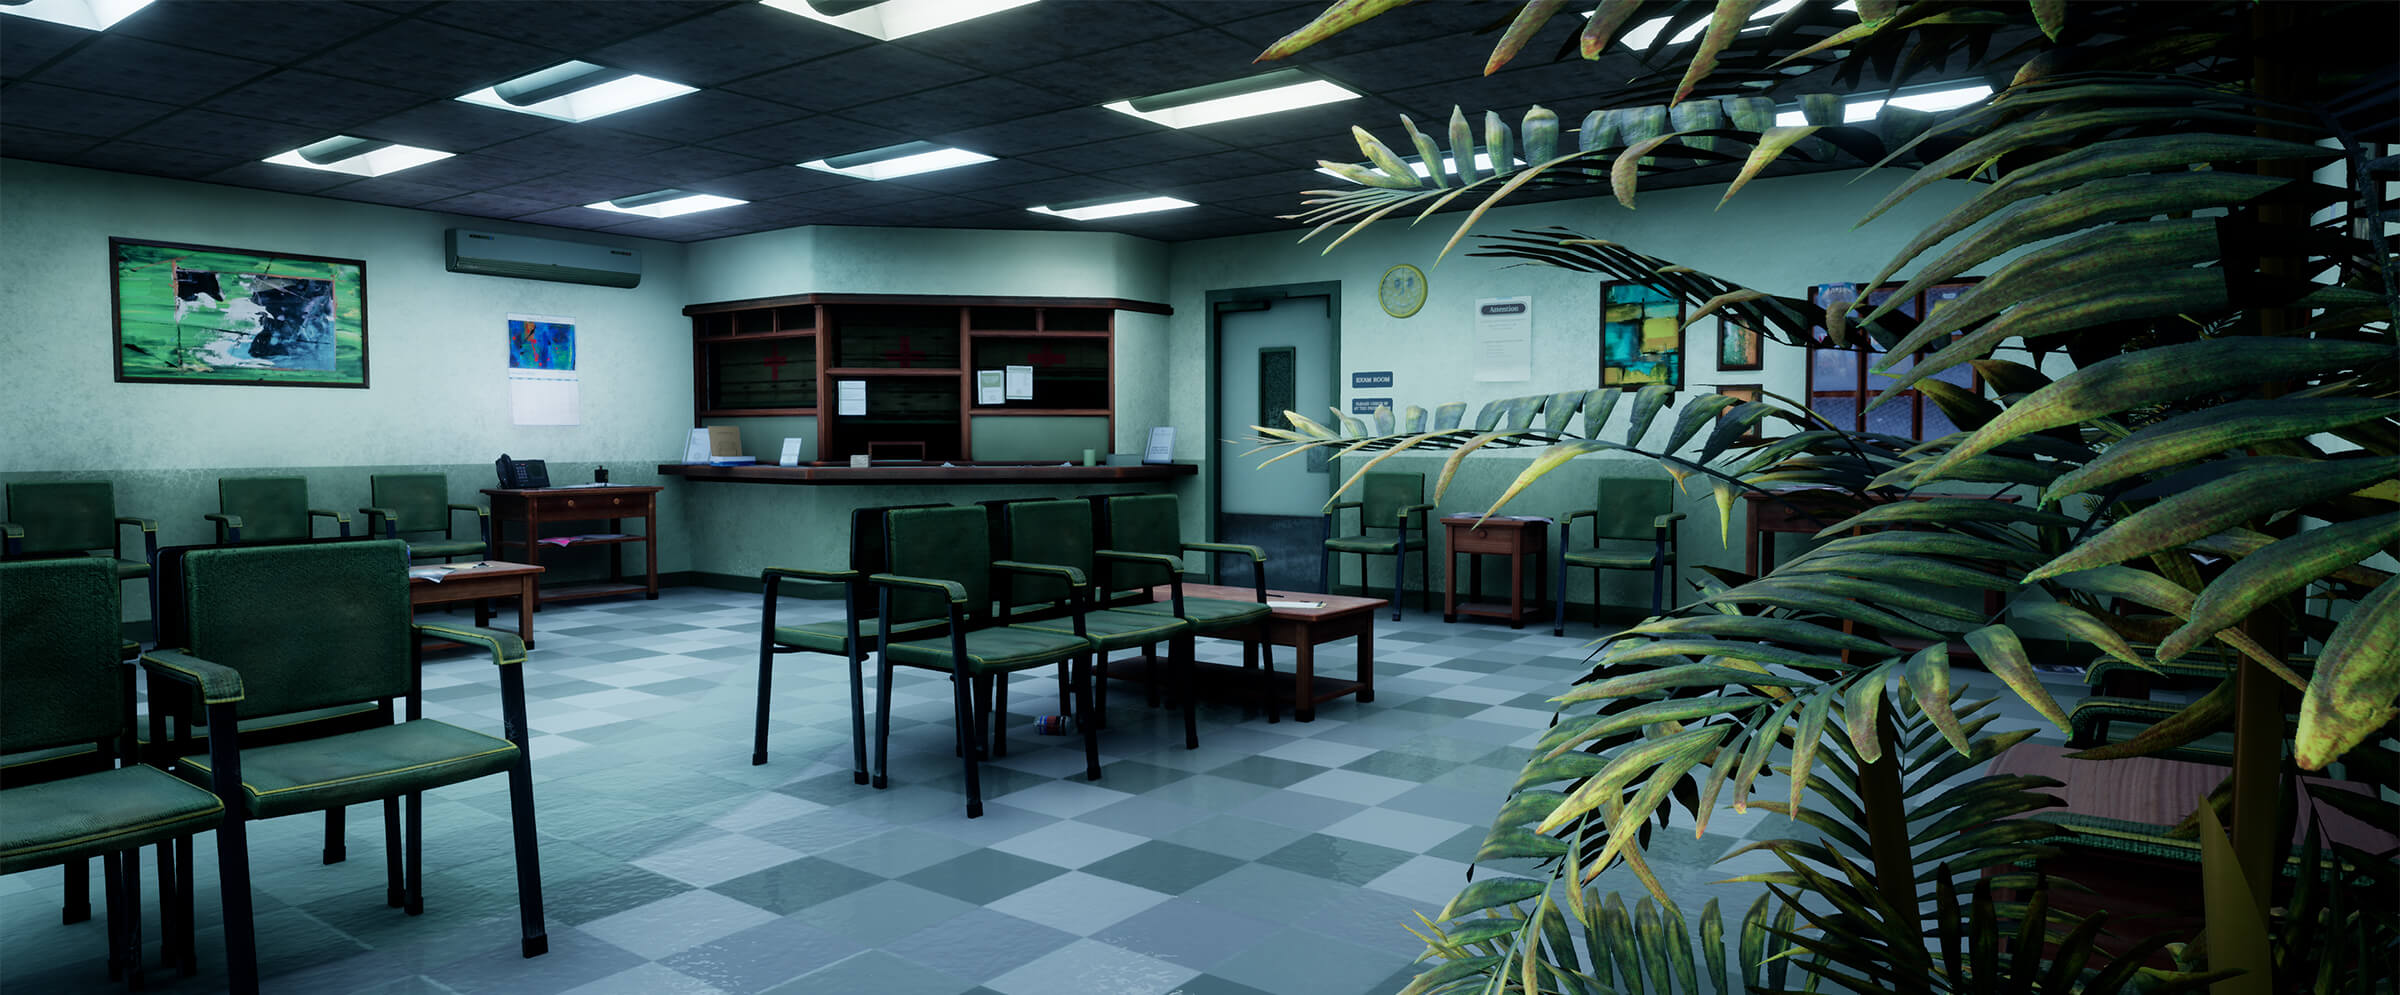 An empty waiting room with plants in the foreground